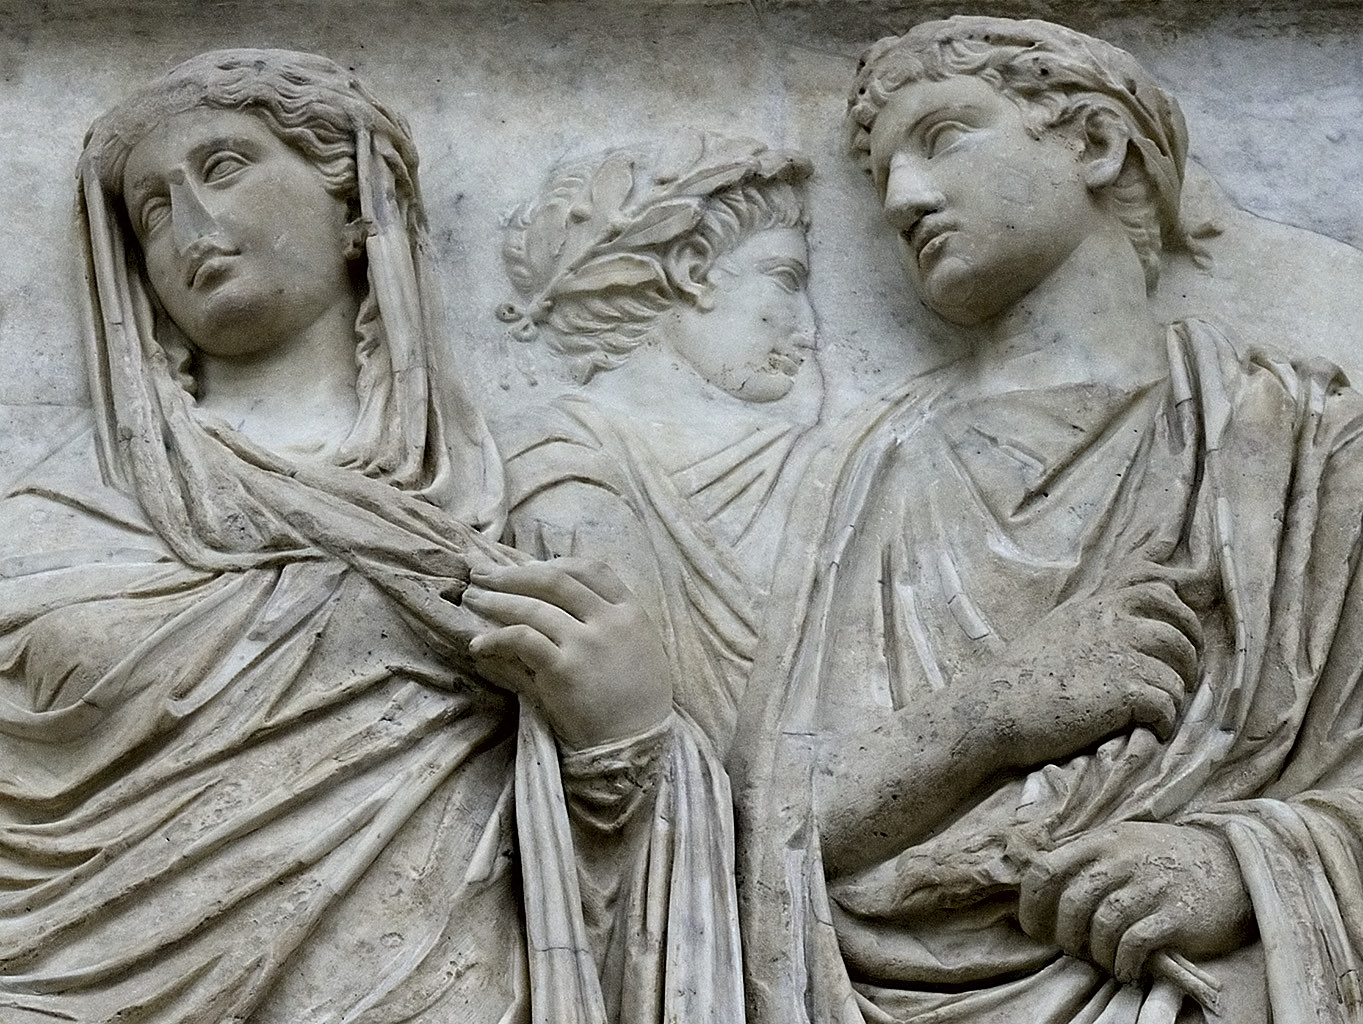 Livia (Giulia?) and Tiberius. South procession (close-up). Rome, Museum of the Altar of Augustan Peace (Ara Pacis Augustae)